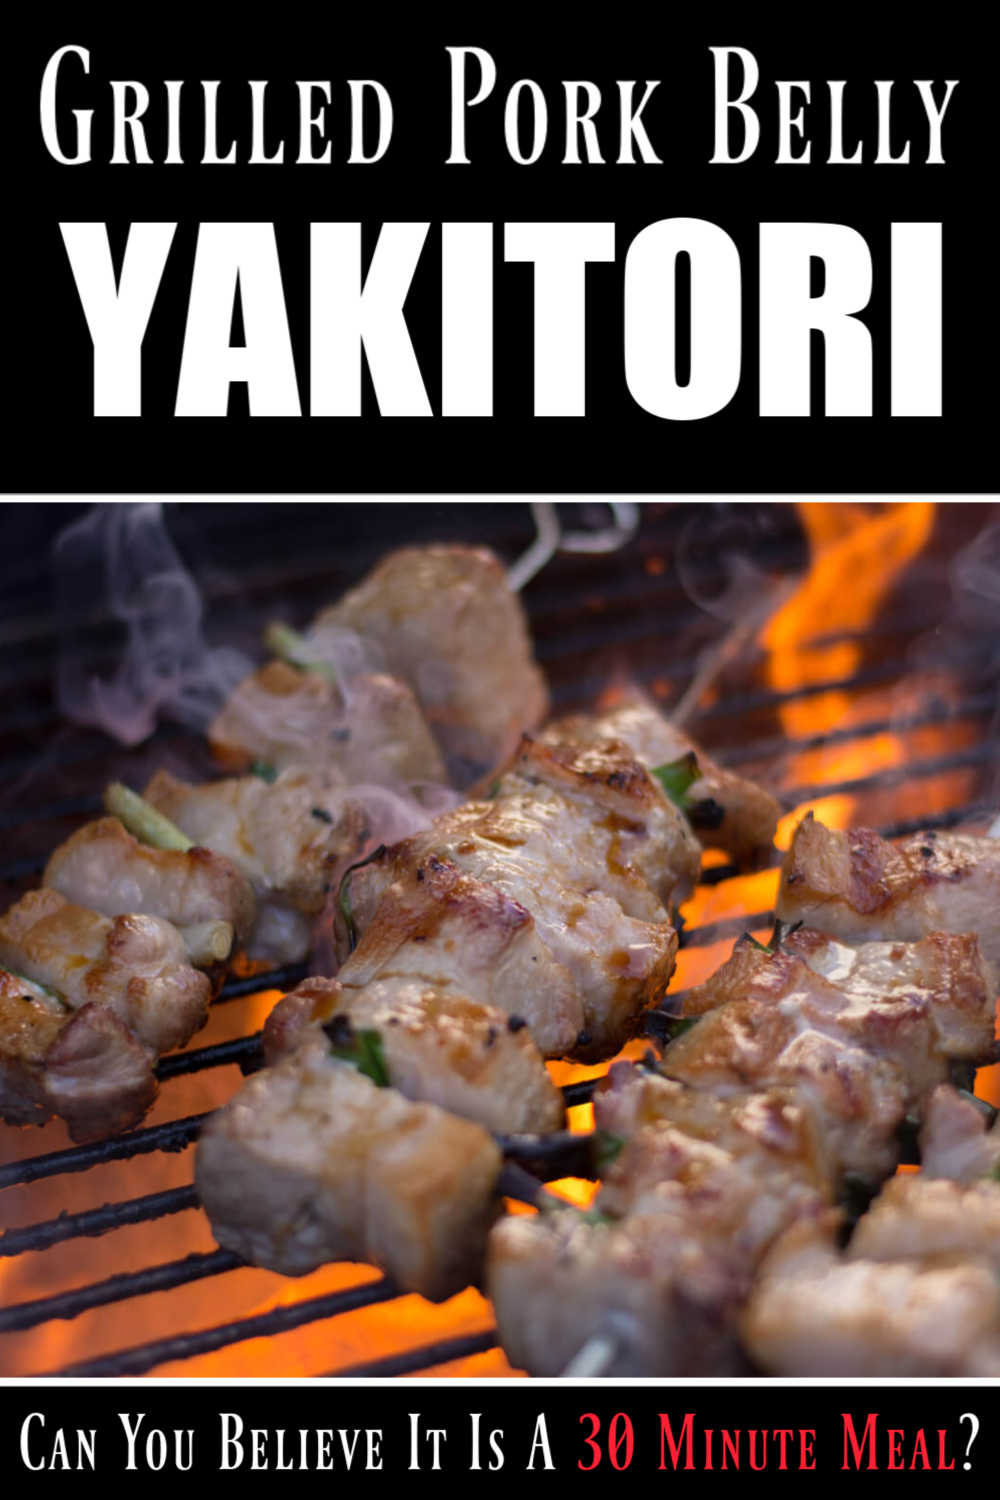 Grilled Pork Belly Yakitori